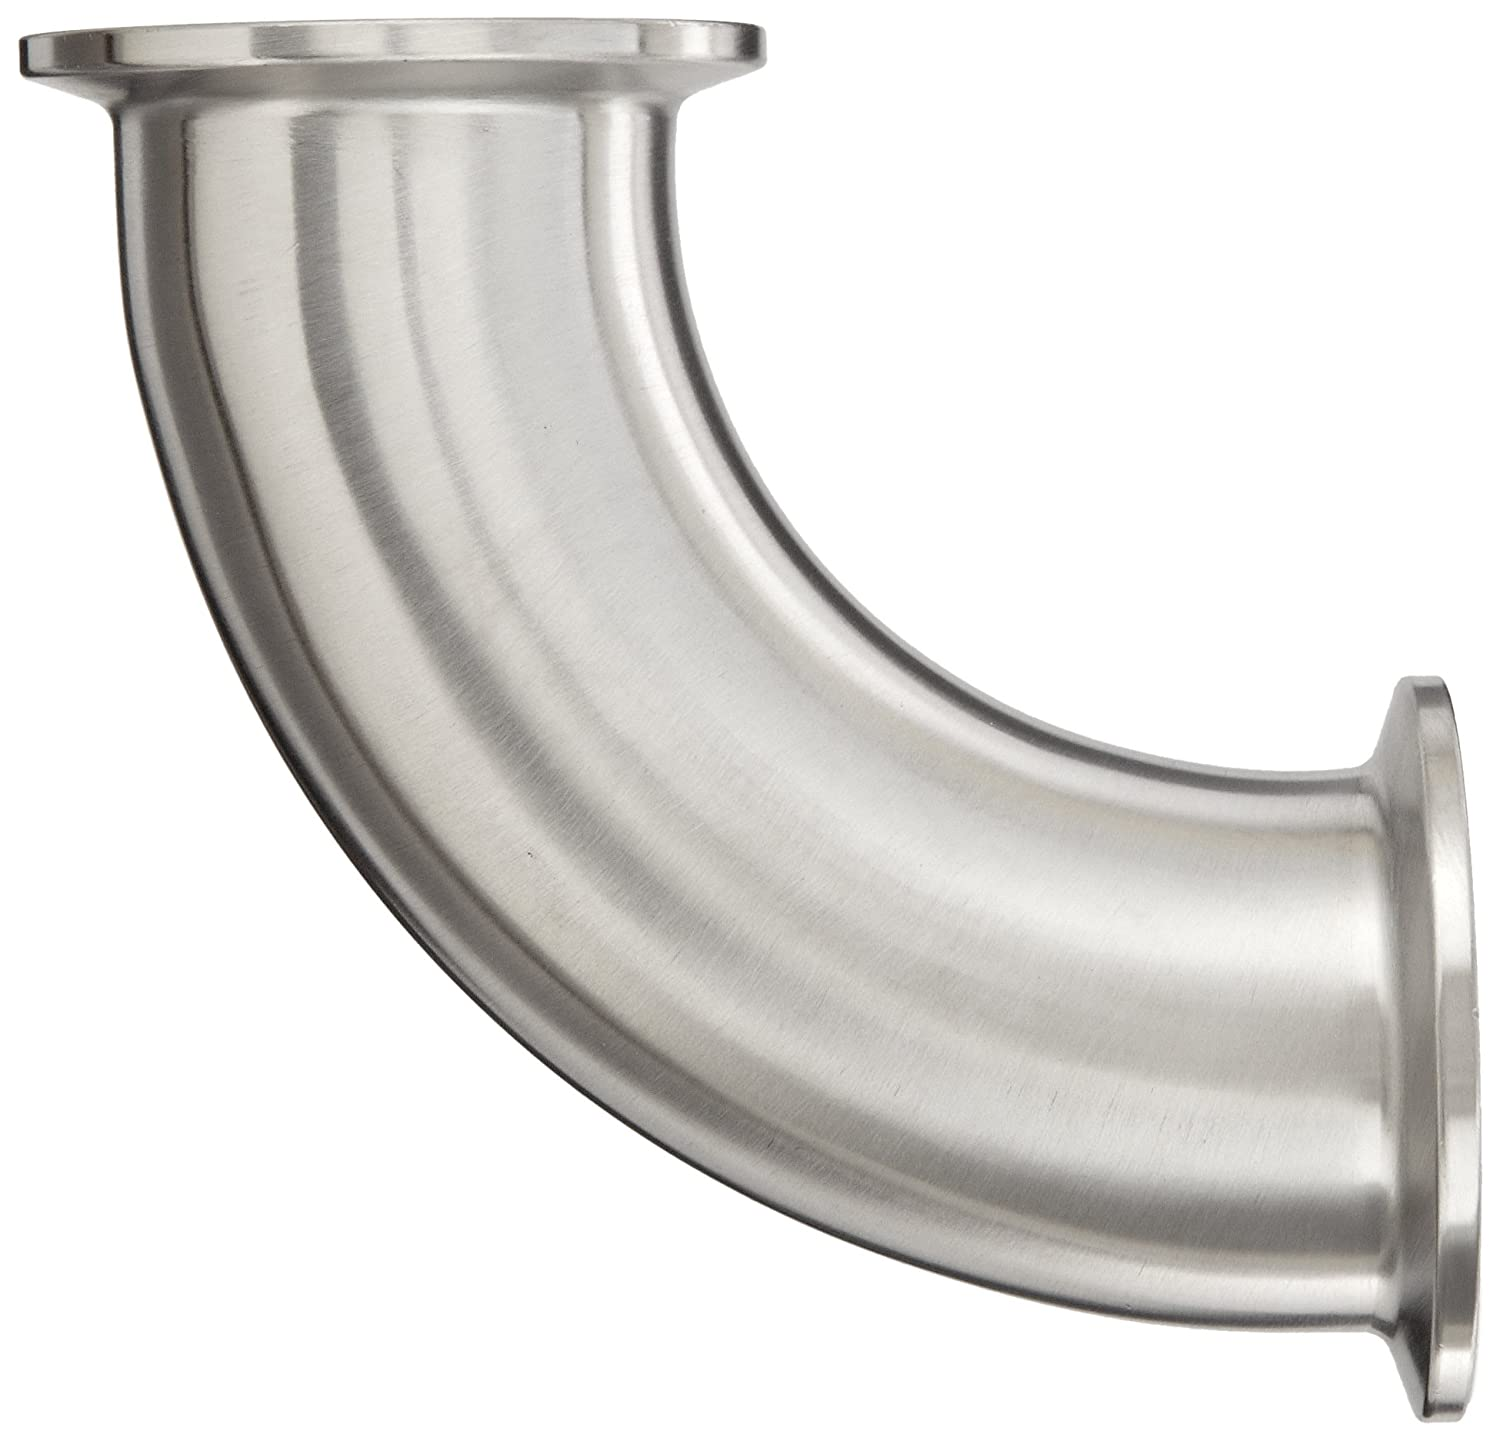 1-1//2 Tube OD 90 Degree Clamp Elbow Dixon B2CMP-G150 Stainless Steel 304 Sanitary Fitting